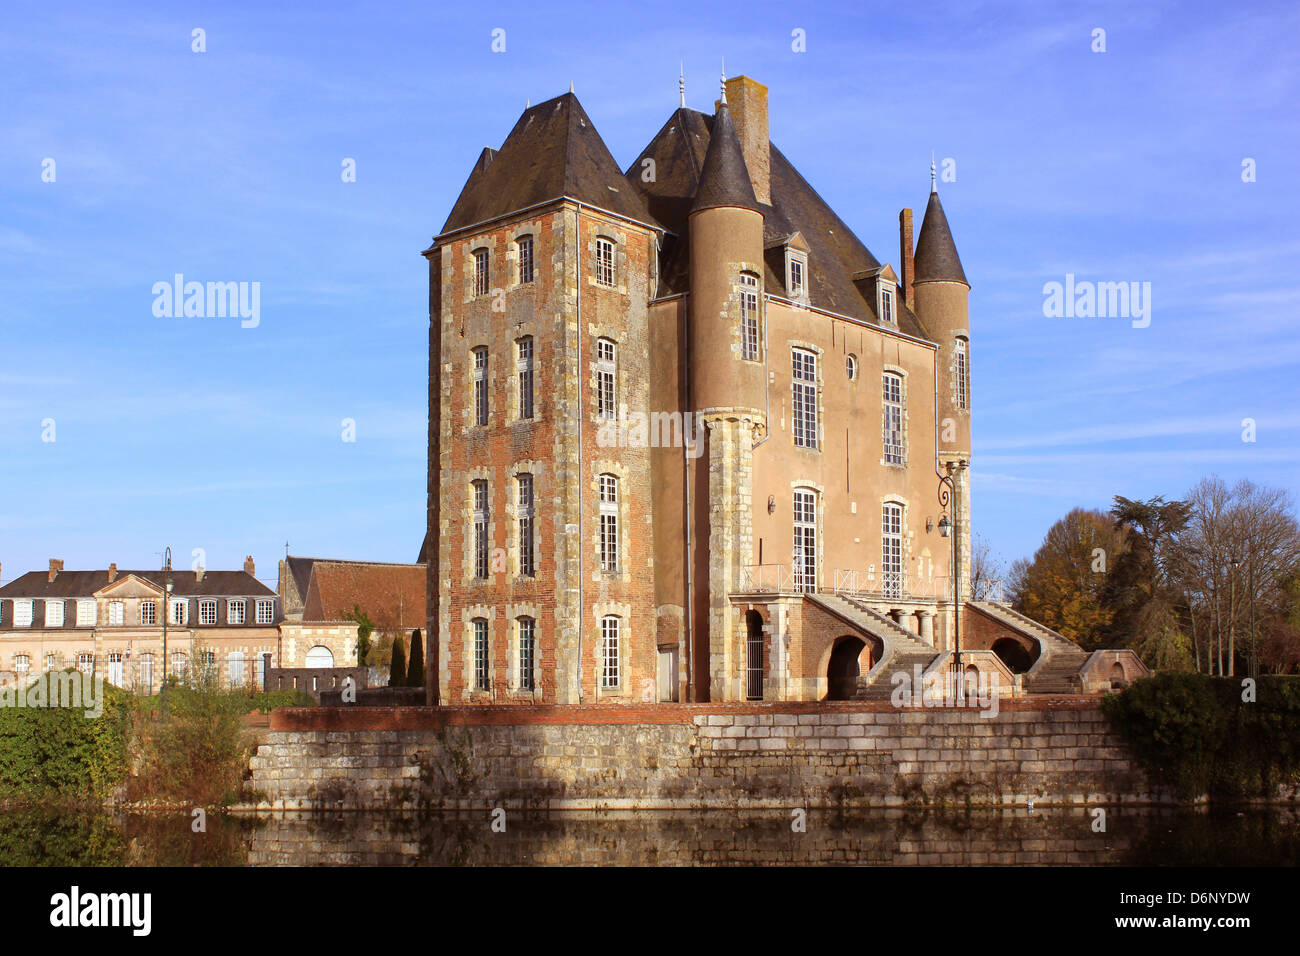 a castle with its moats, its park and garden with its towers and its ancient architecture - Stock Image